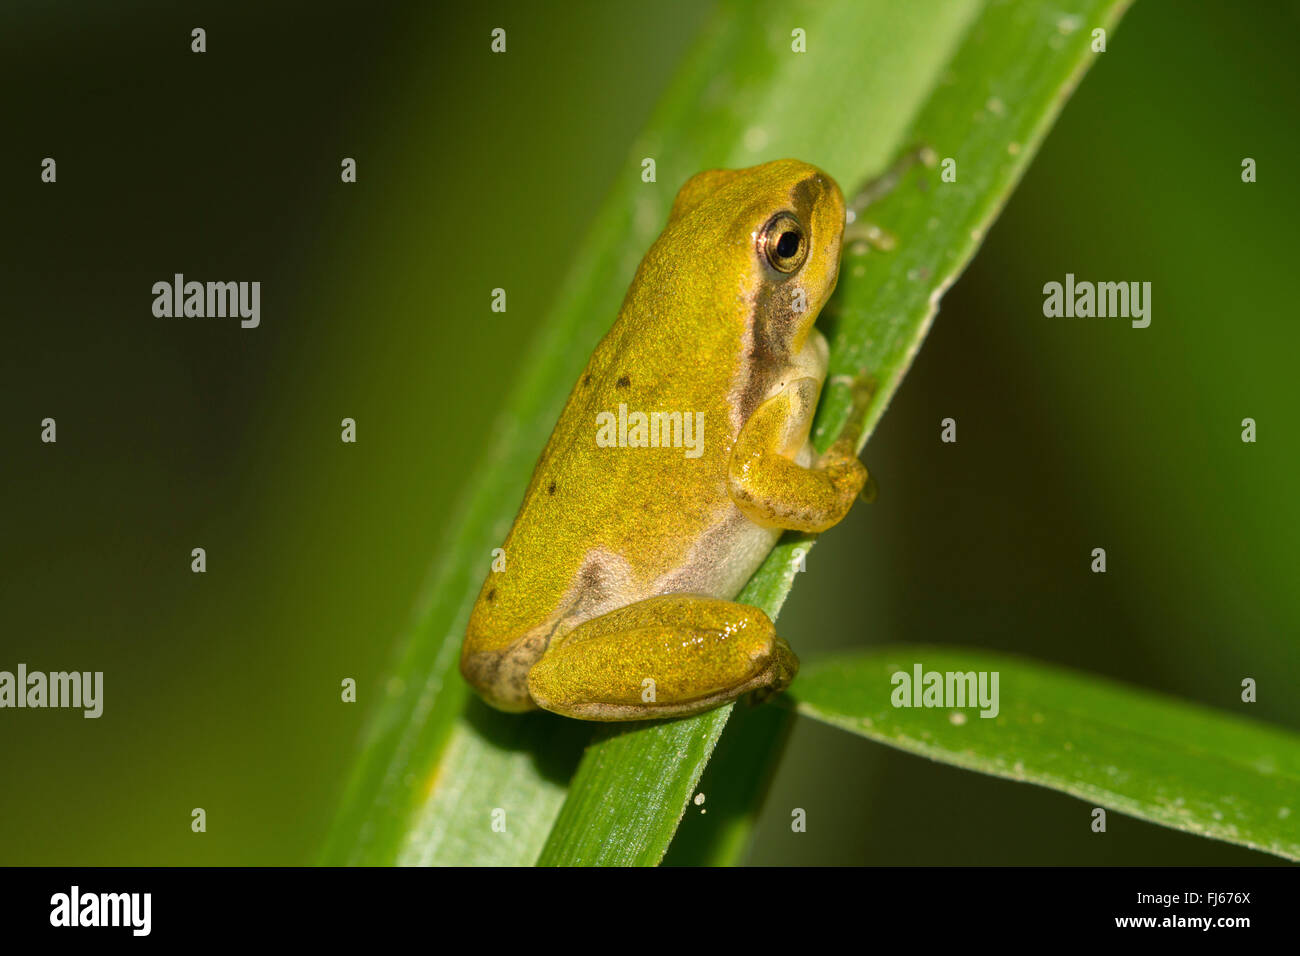 European treefrog, common treefrog, Central European treefrog (Hyla arborea), juvenile, after the end of the metamorphosis, - Stock Image